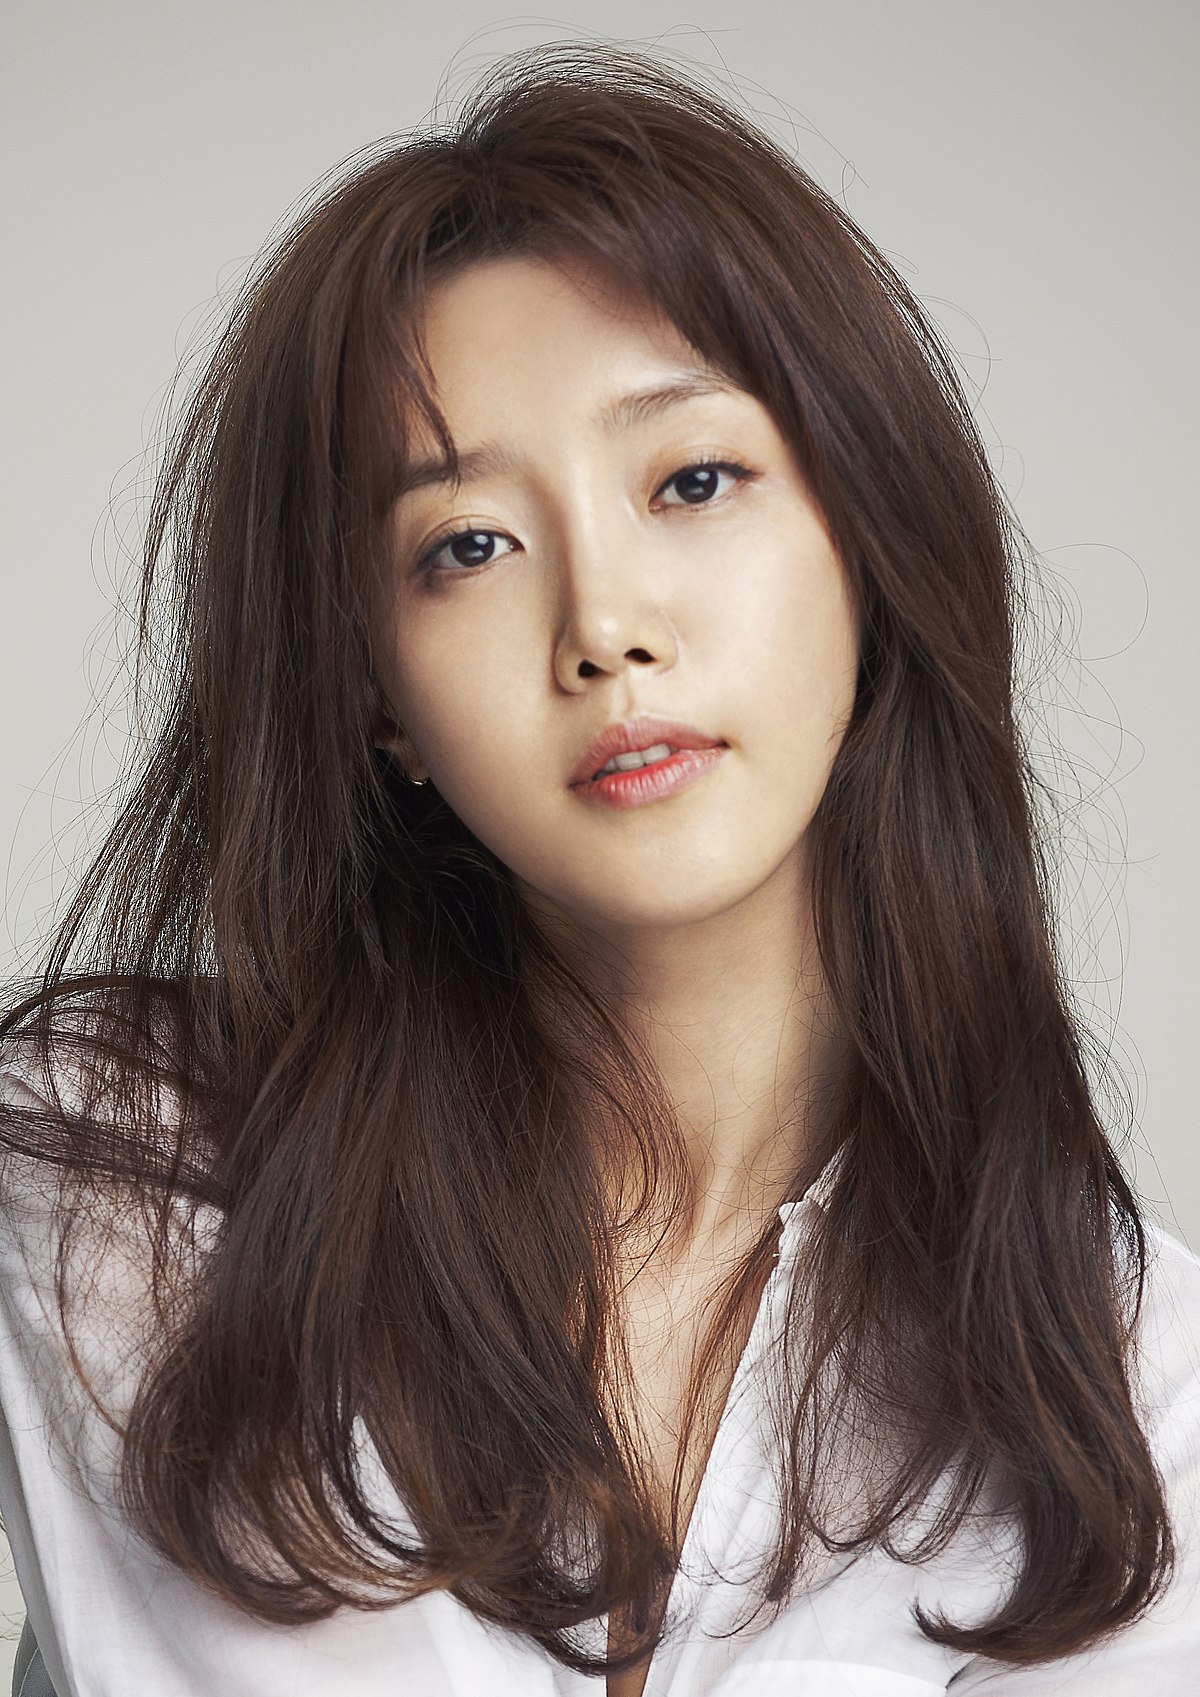 Chae Jung-an - Wikipedia